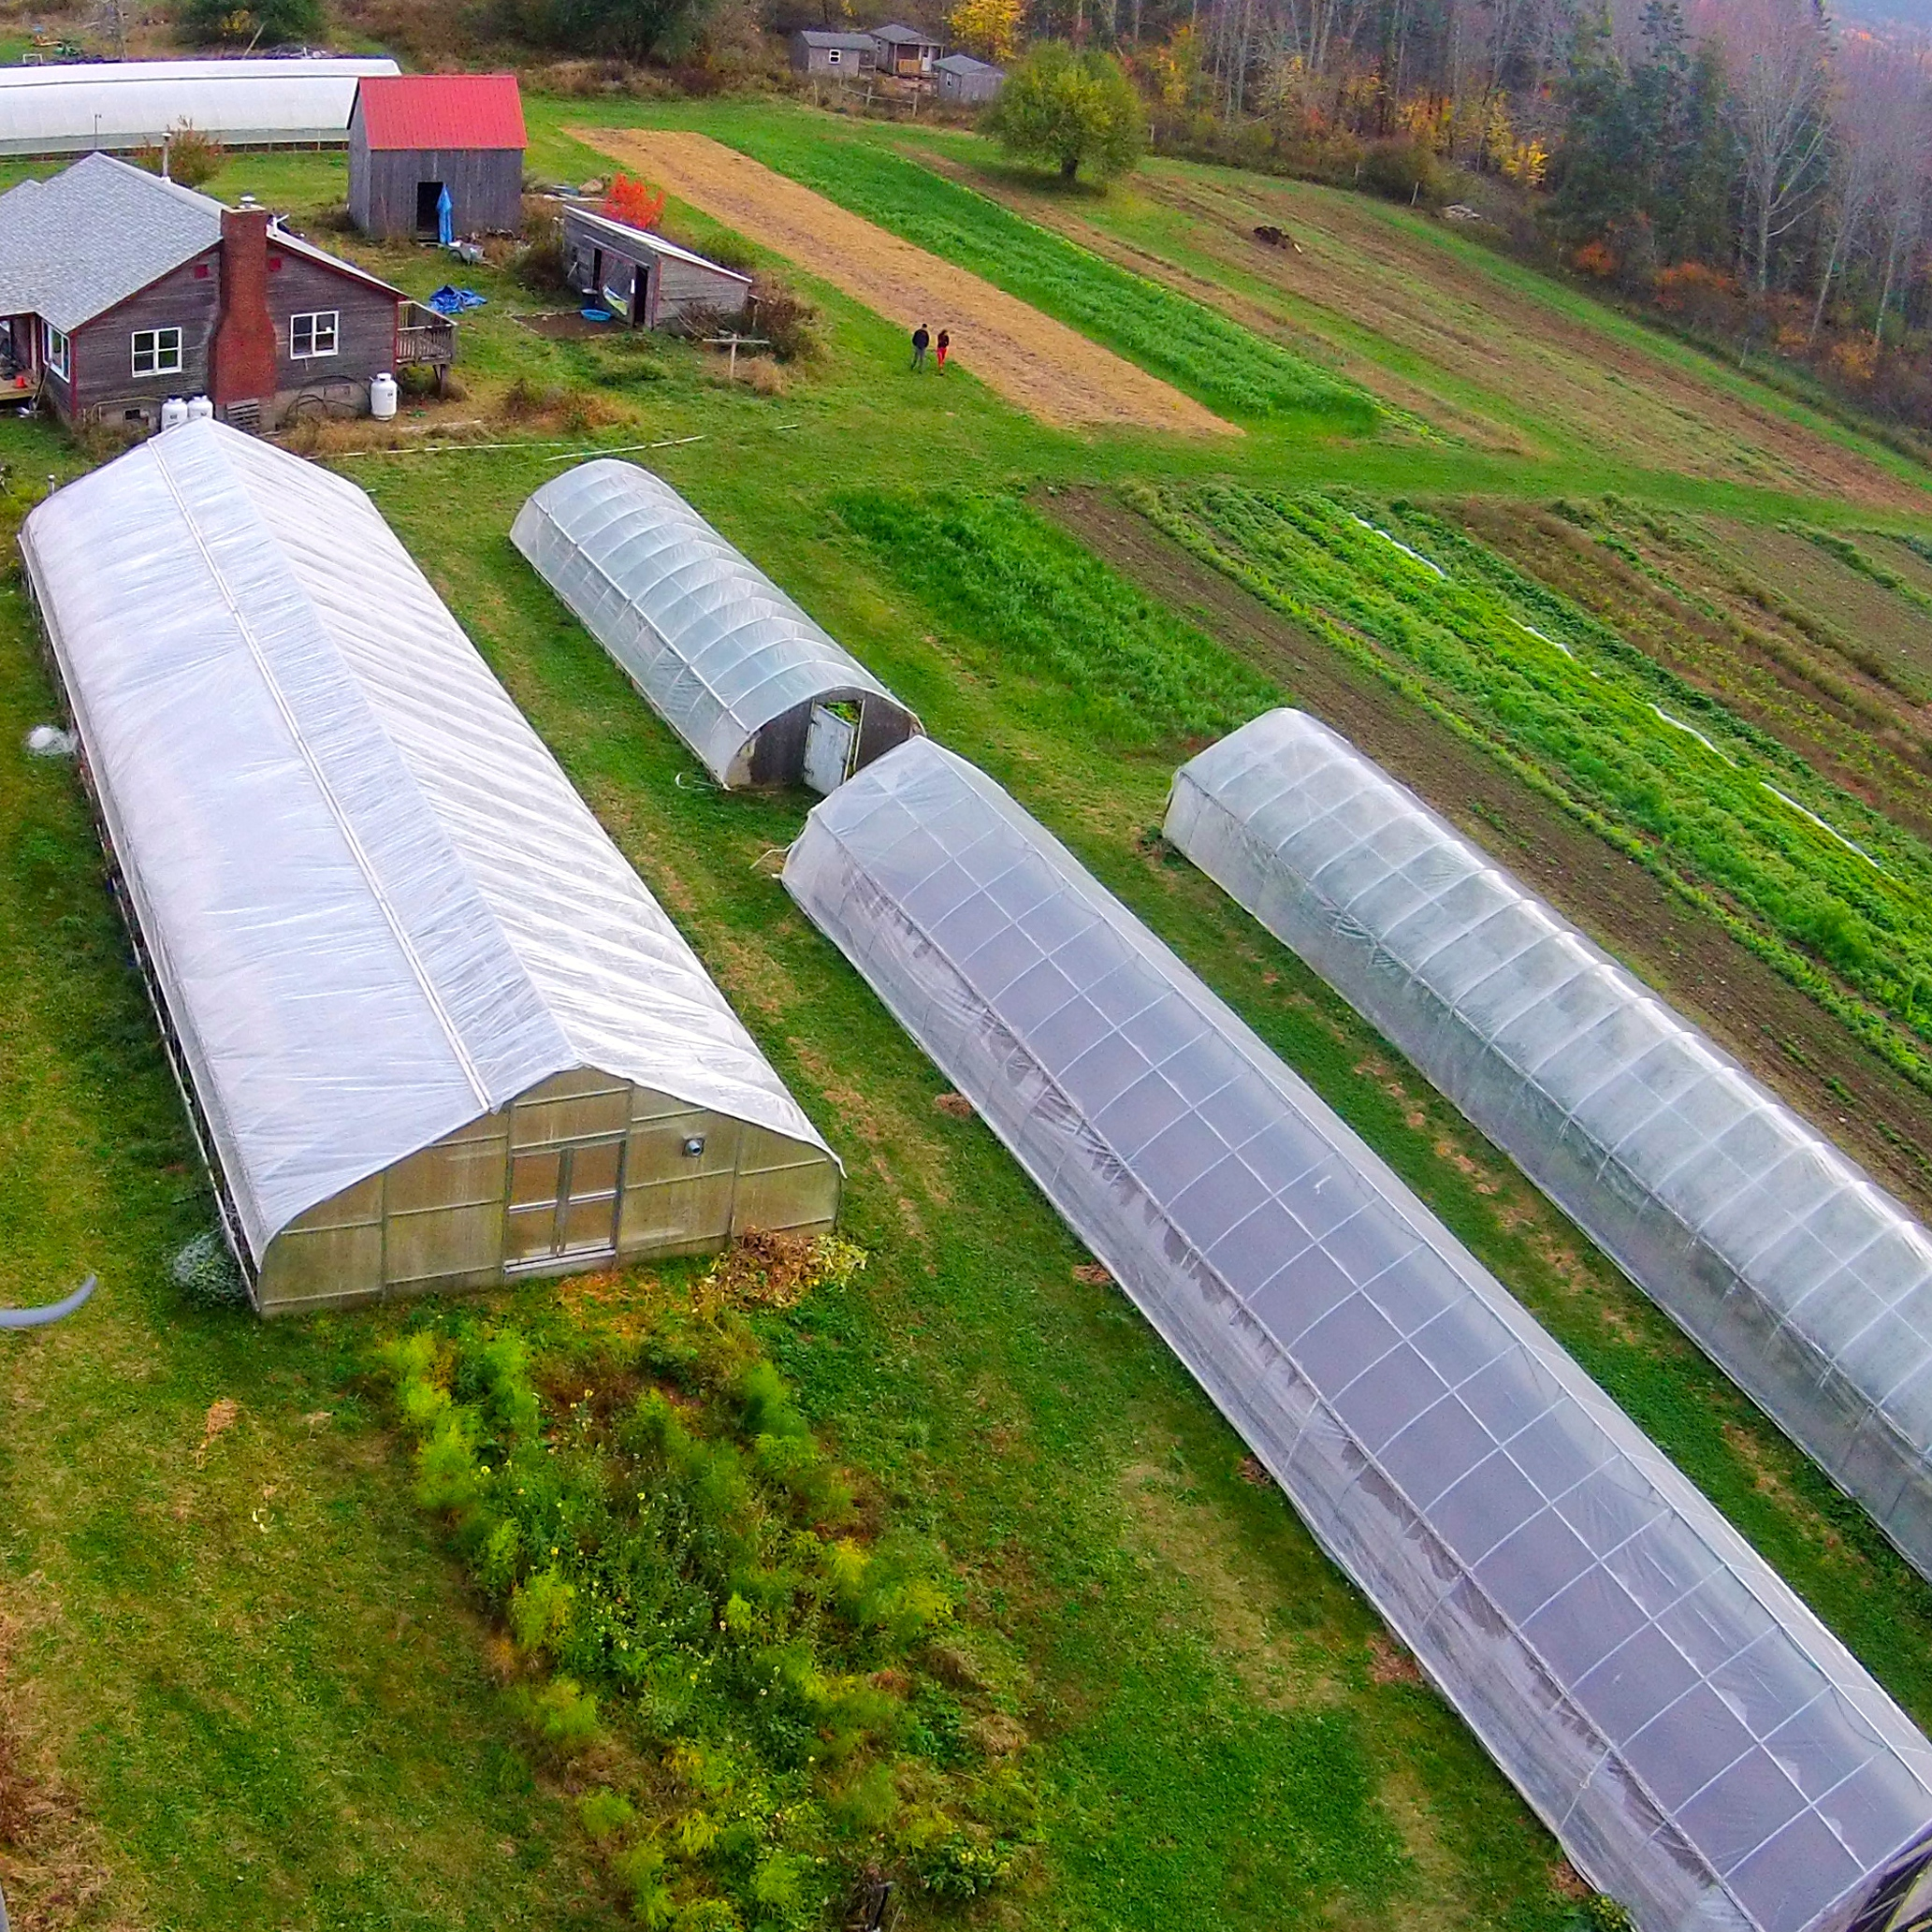 Exciting to see @collegeoftheatlantic @beechhillfarm_coa in the #1 spot on Best Value Schools list of Top College Farms!  #best #collegefarm #smallfarm #organic #farm #top #collegeoftheatlantic #experiential #selfdirectedlearning #lifechanging #worldchanging